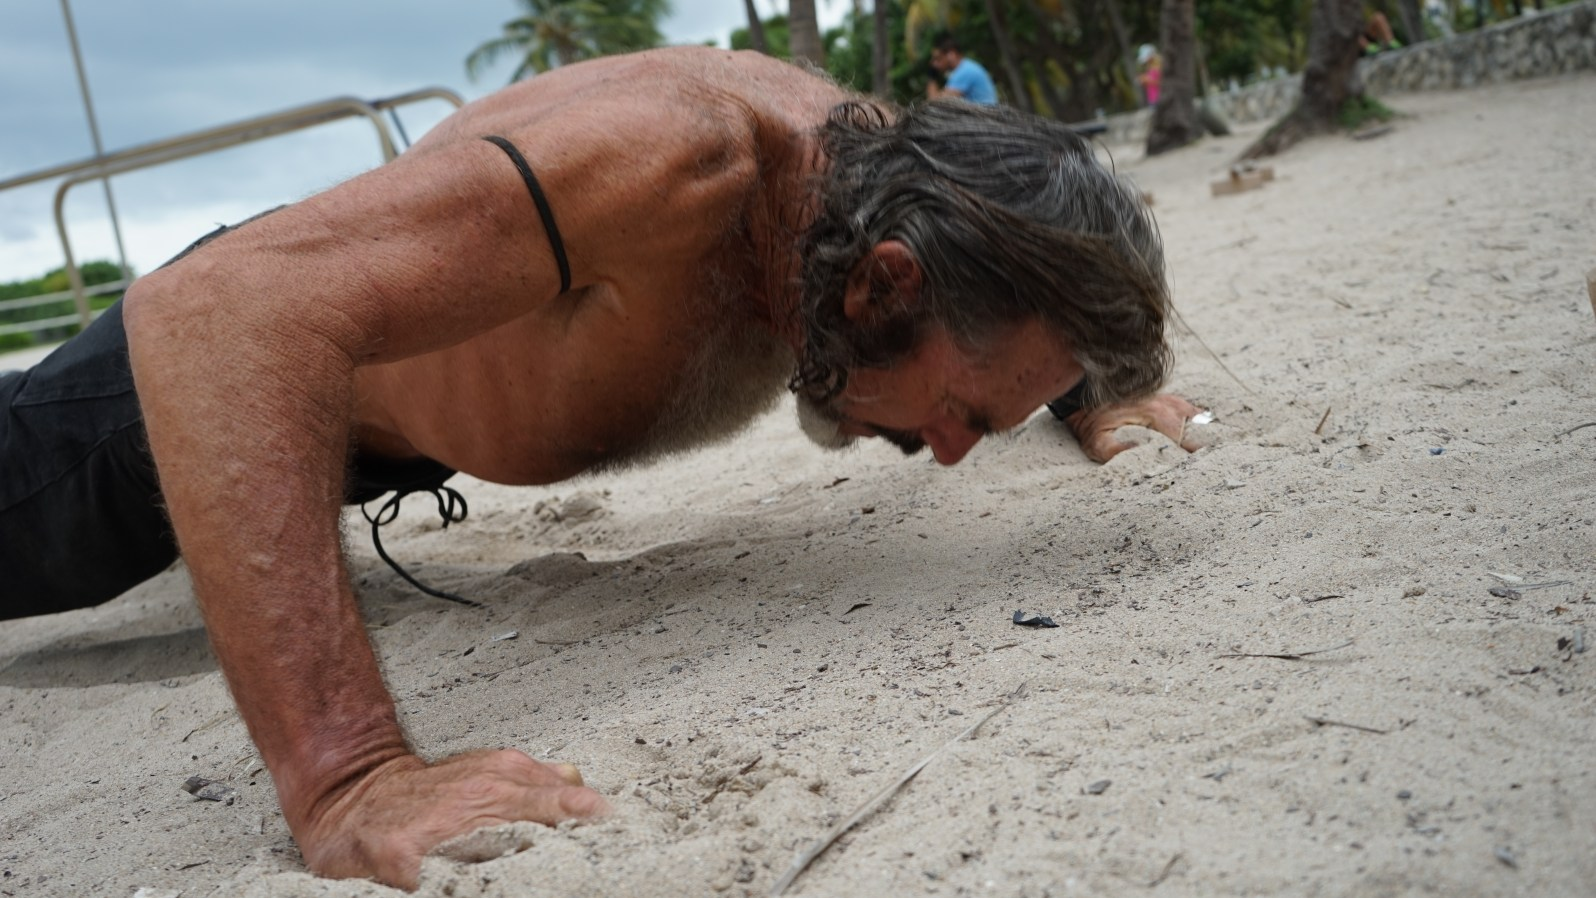 Raven does 100 push-ups before his run. (Credit: Roshan Nebhrajani/The New Tropic)